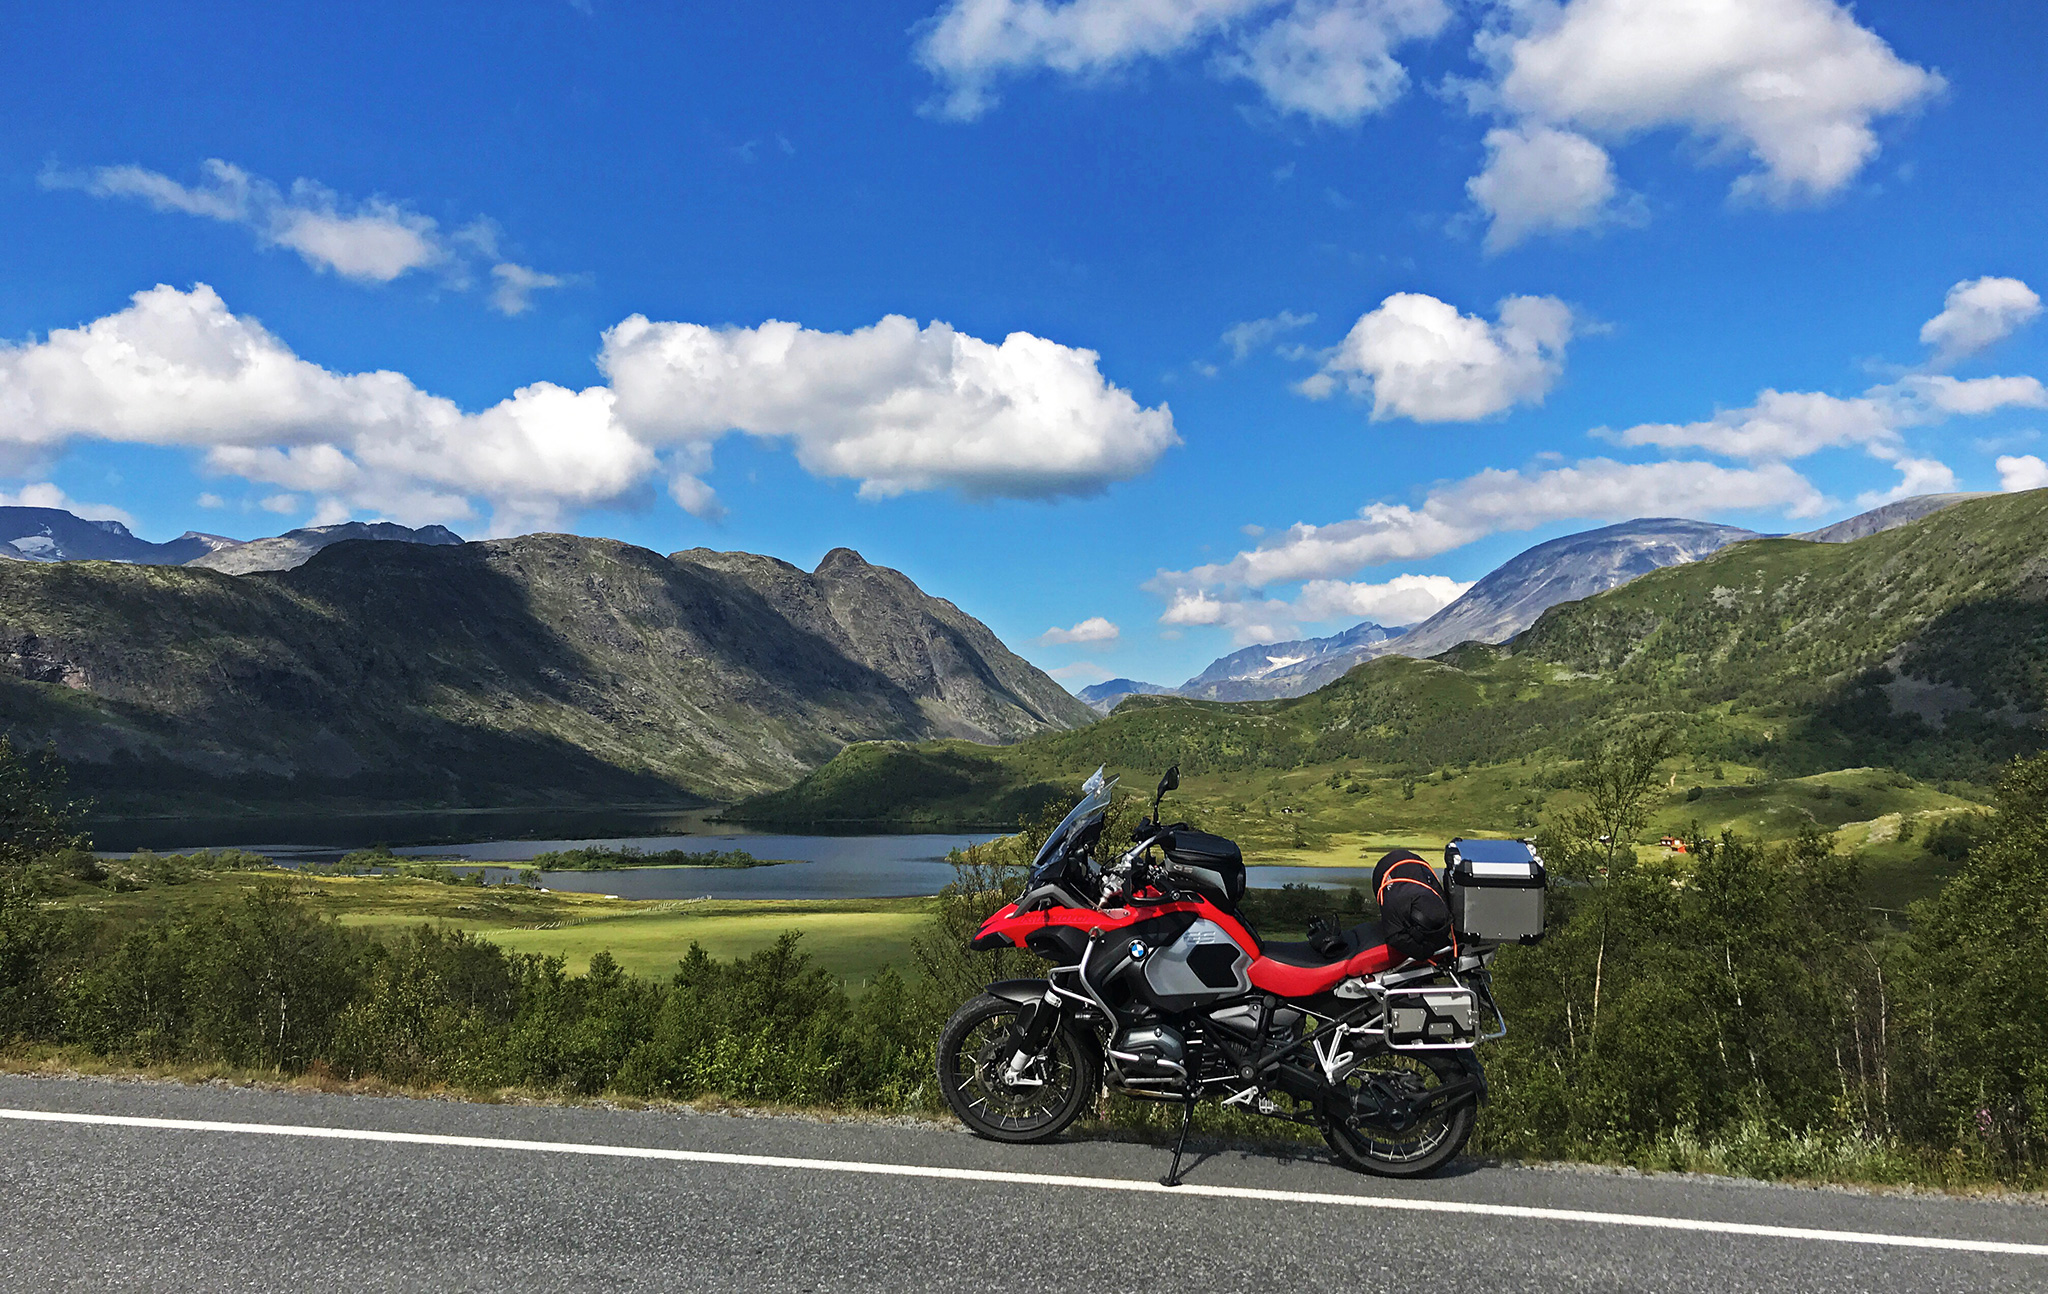 Pretty view of Jotunheimen National Park